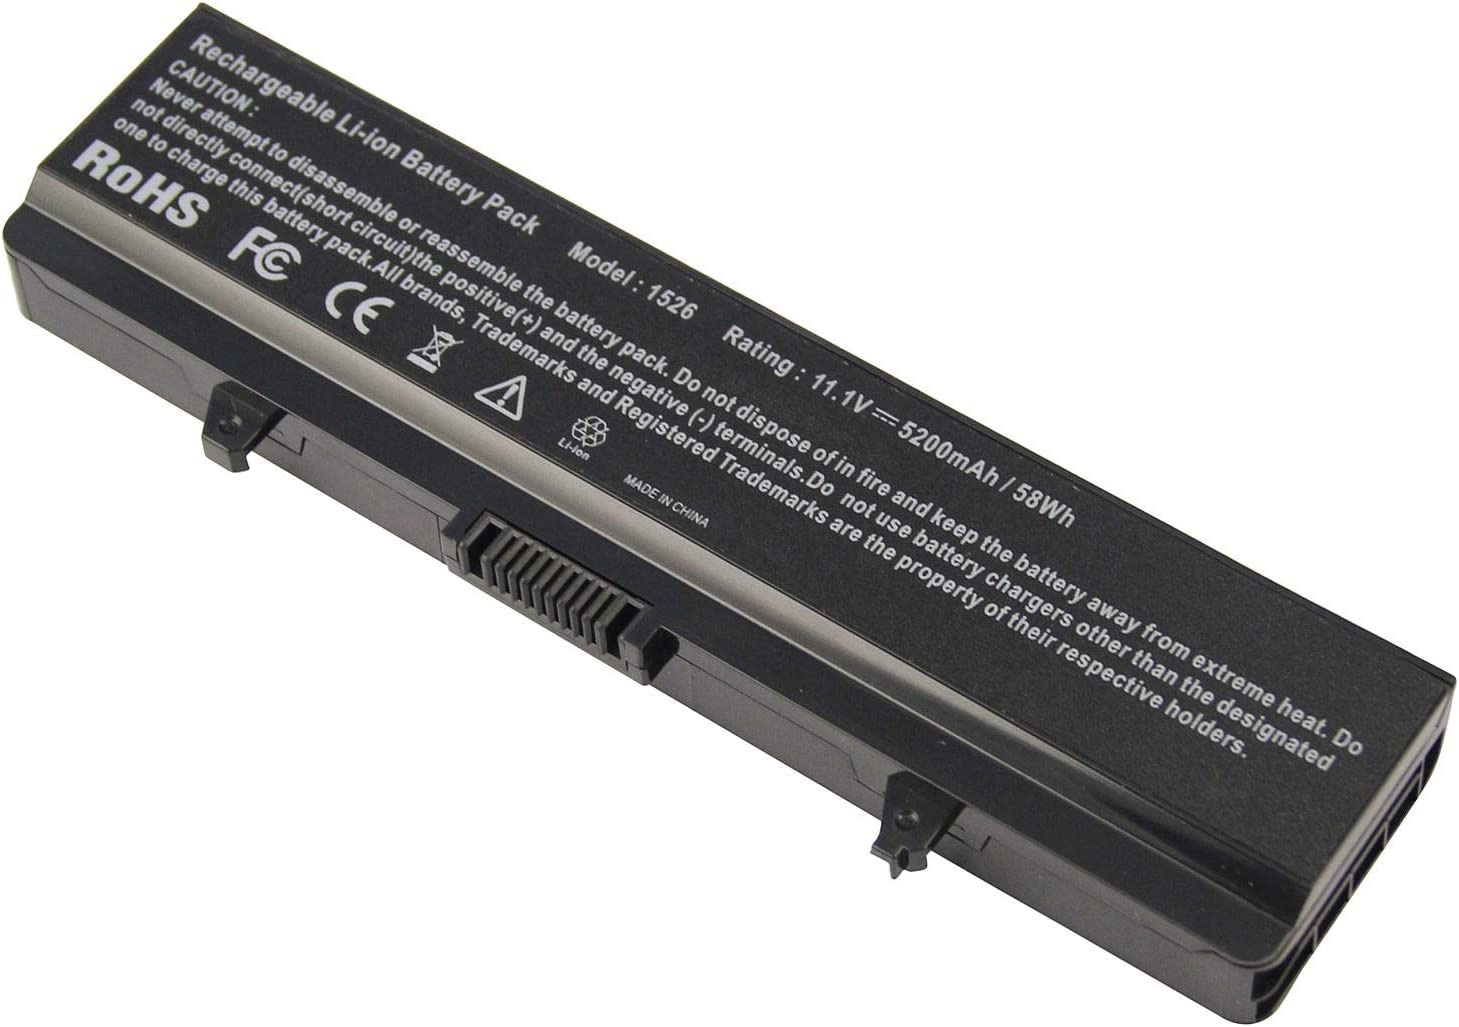 yan 6 Cell Battery for DELL Inspiron 1525 1526 1545 1546 1750 PP29L PP41L Vostro 500